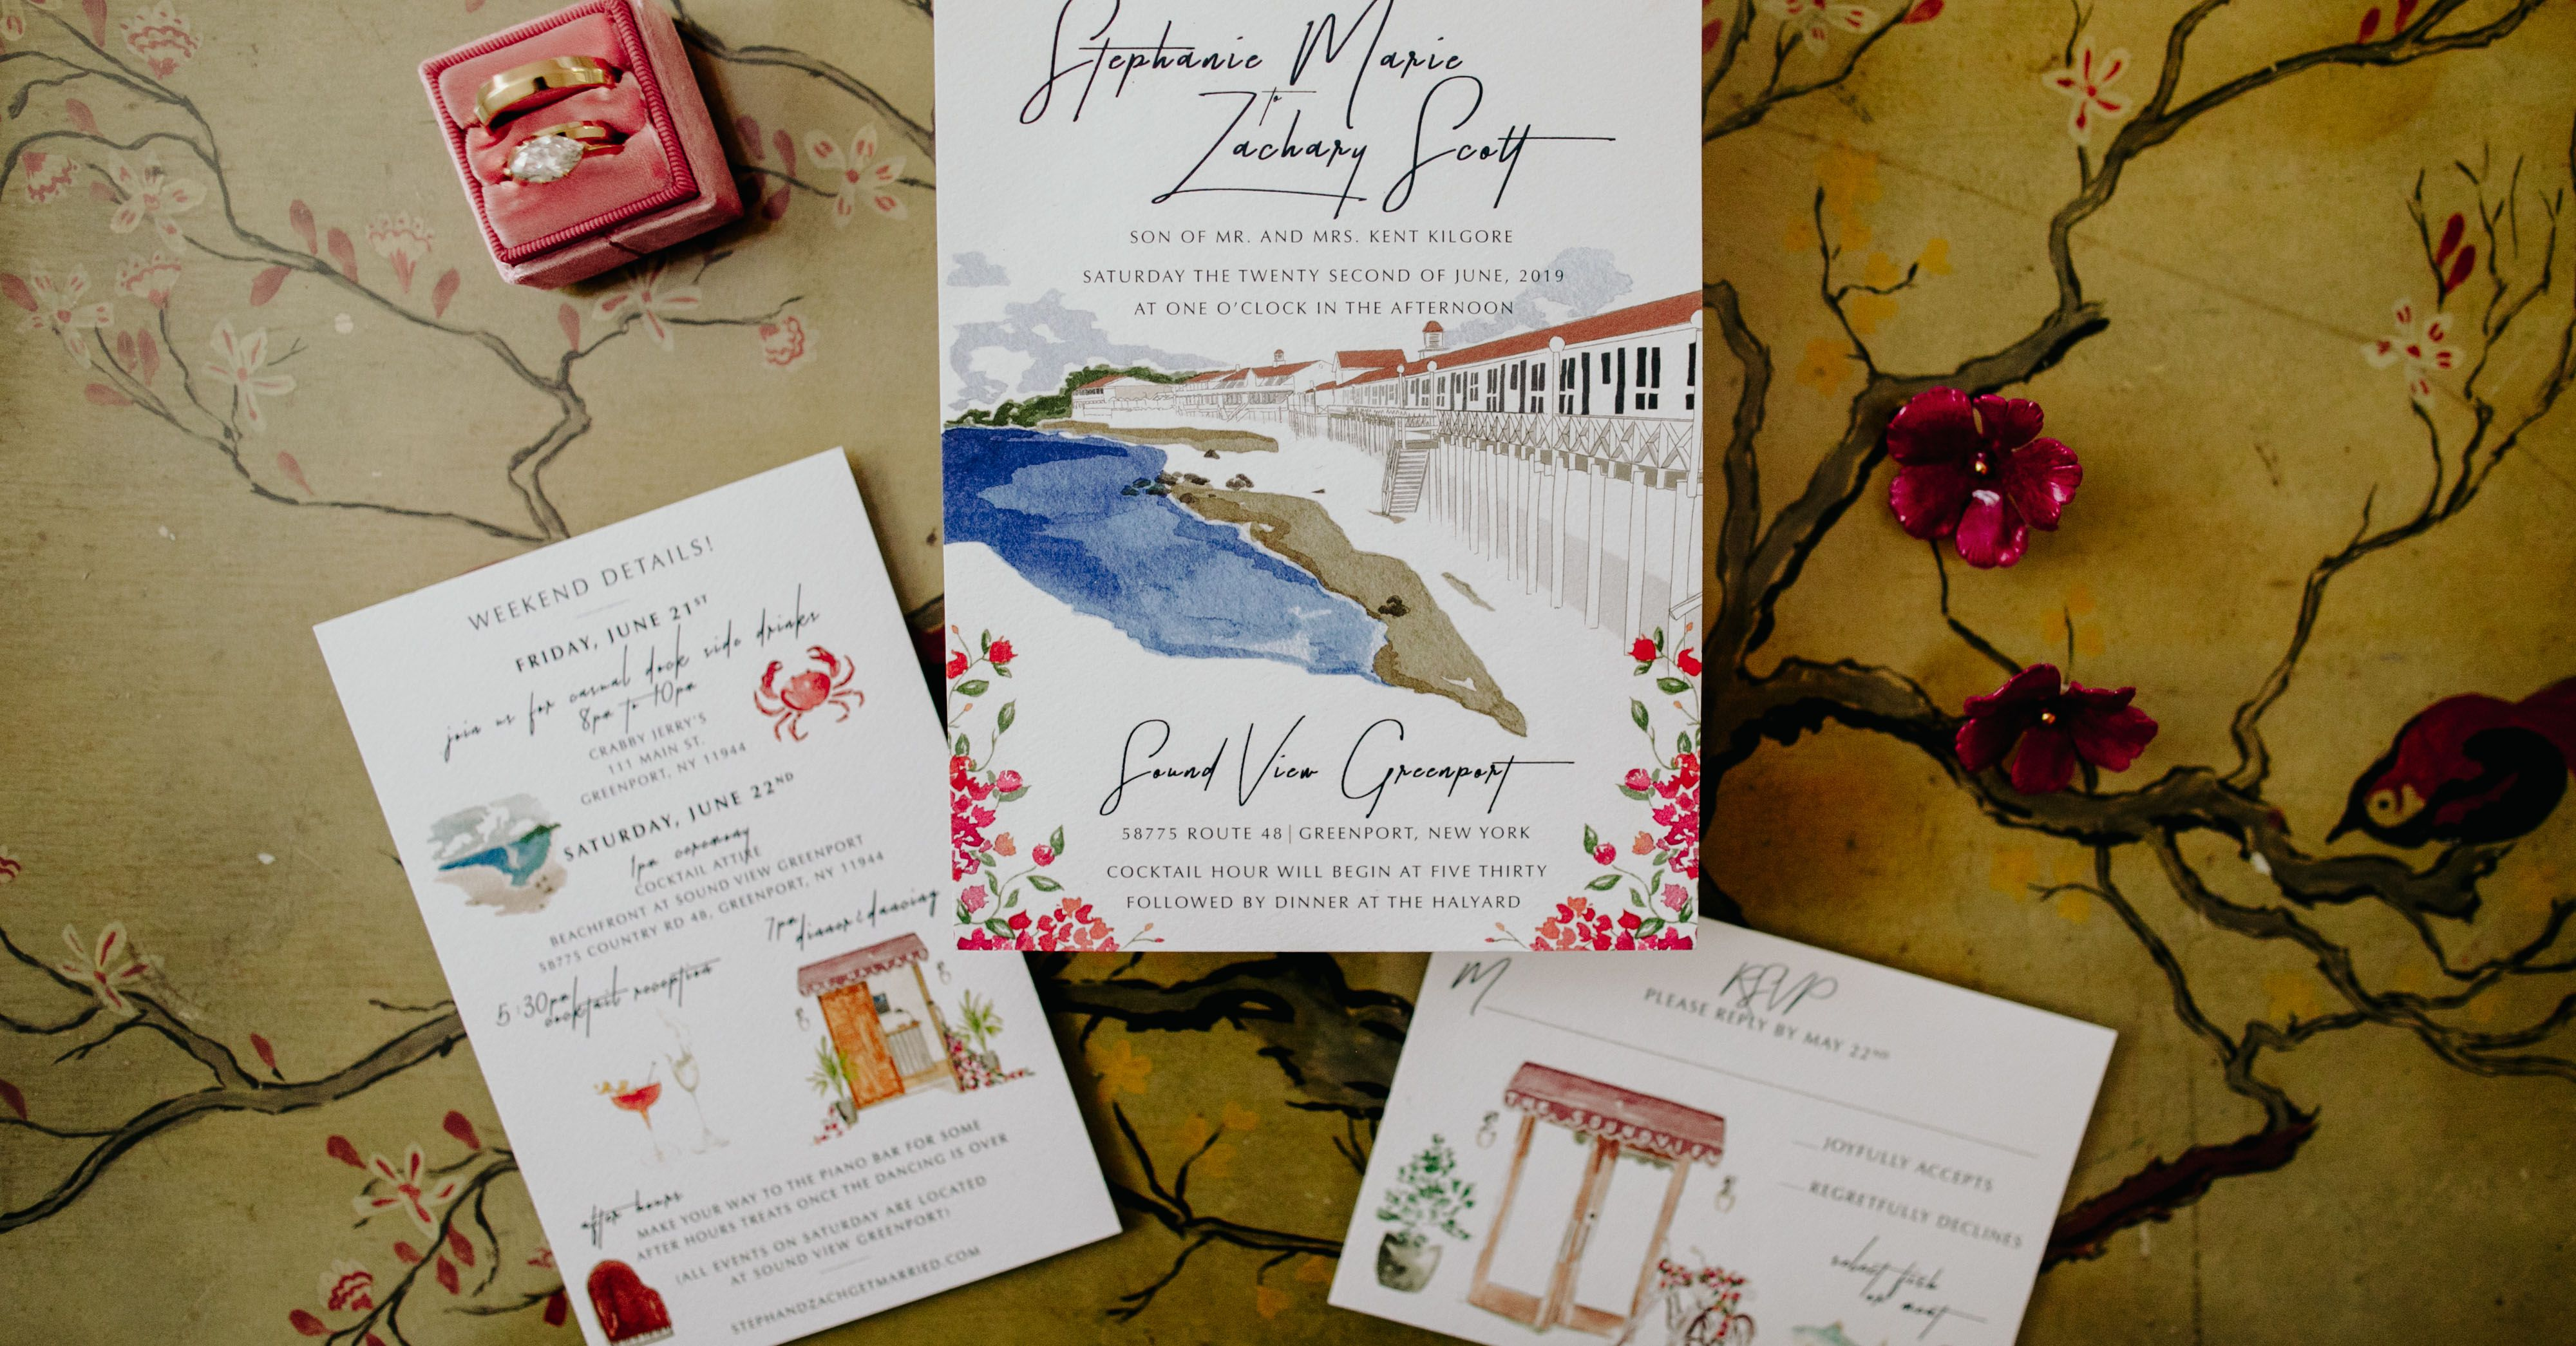 What Does Rsvp Mean On A Wedding Invitation